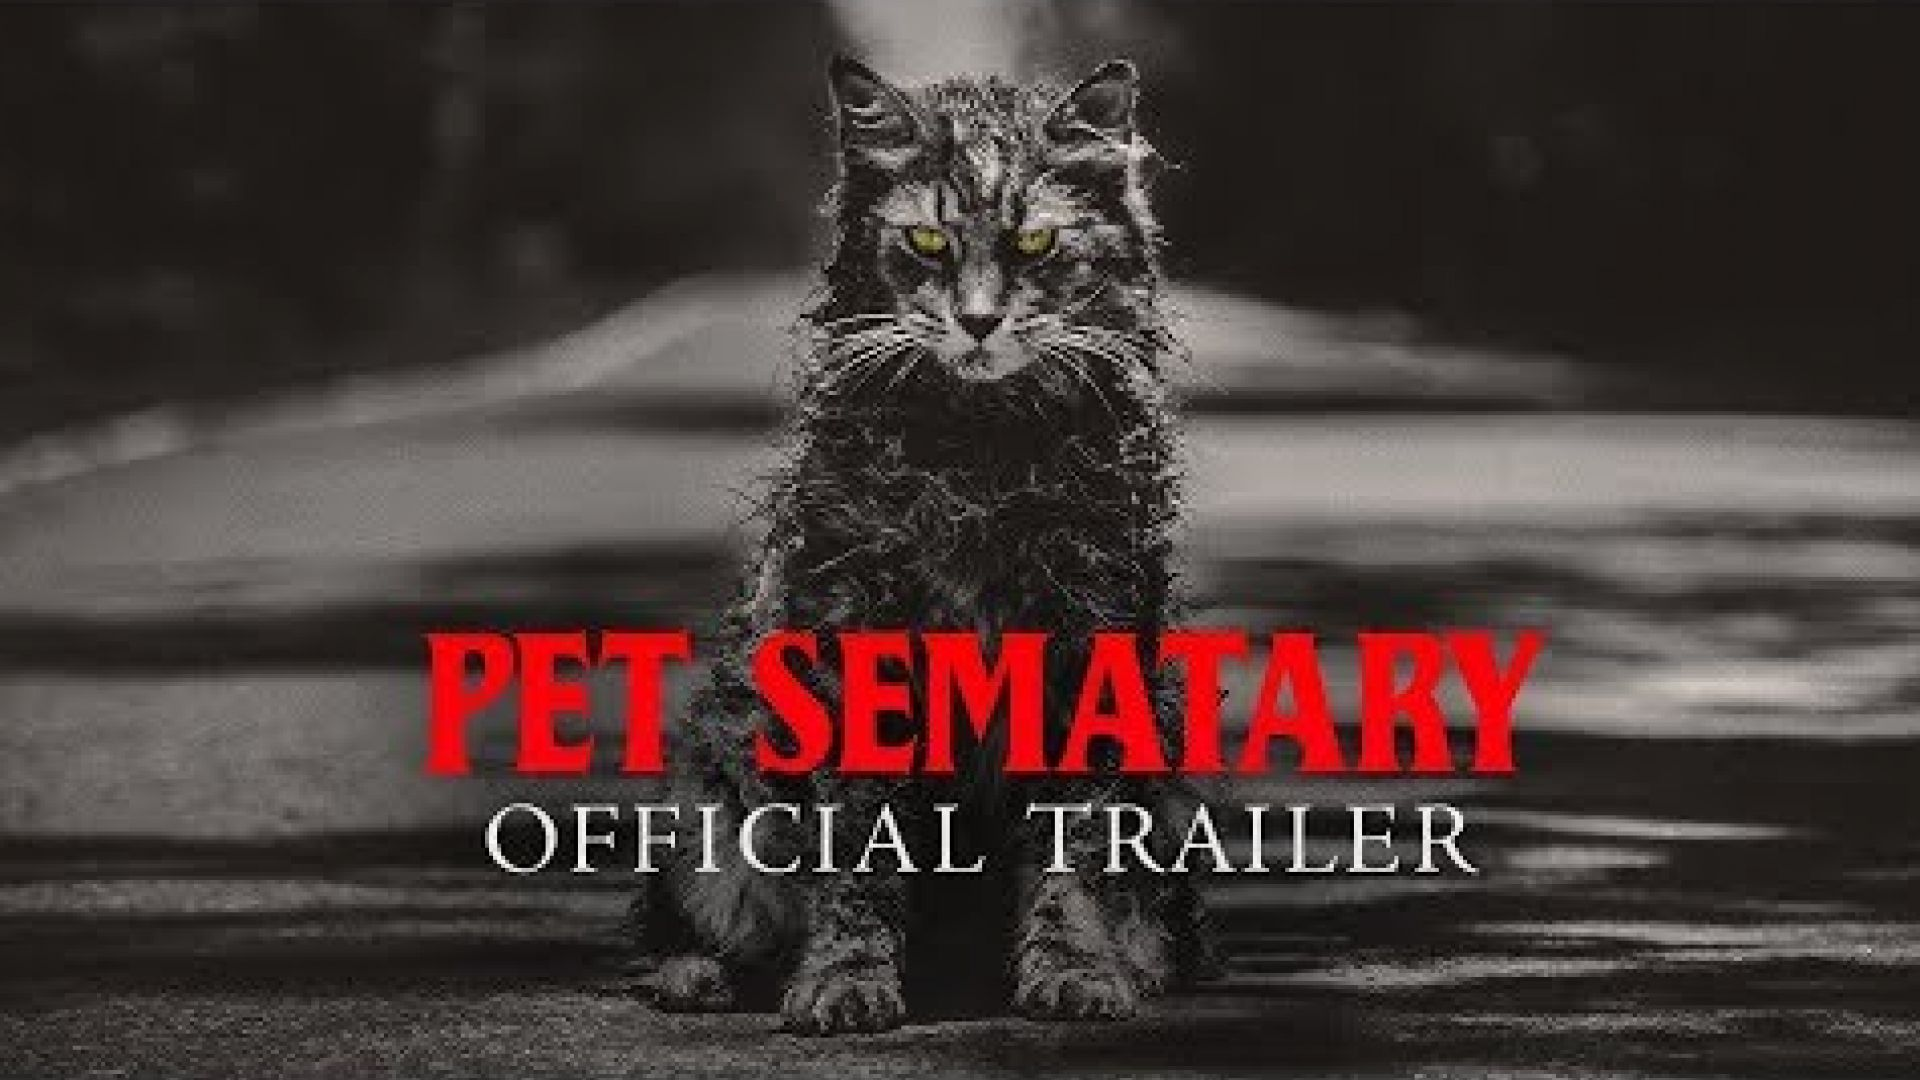 'Pet Sematary' Trailer 2 - Paramount Pictures